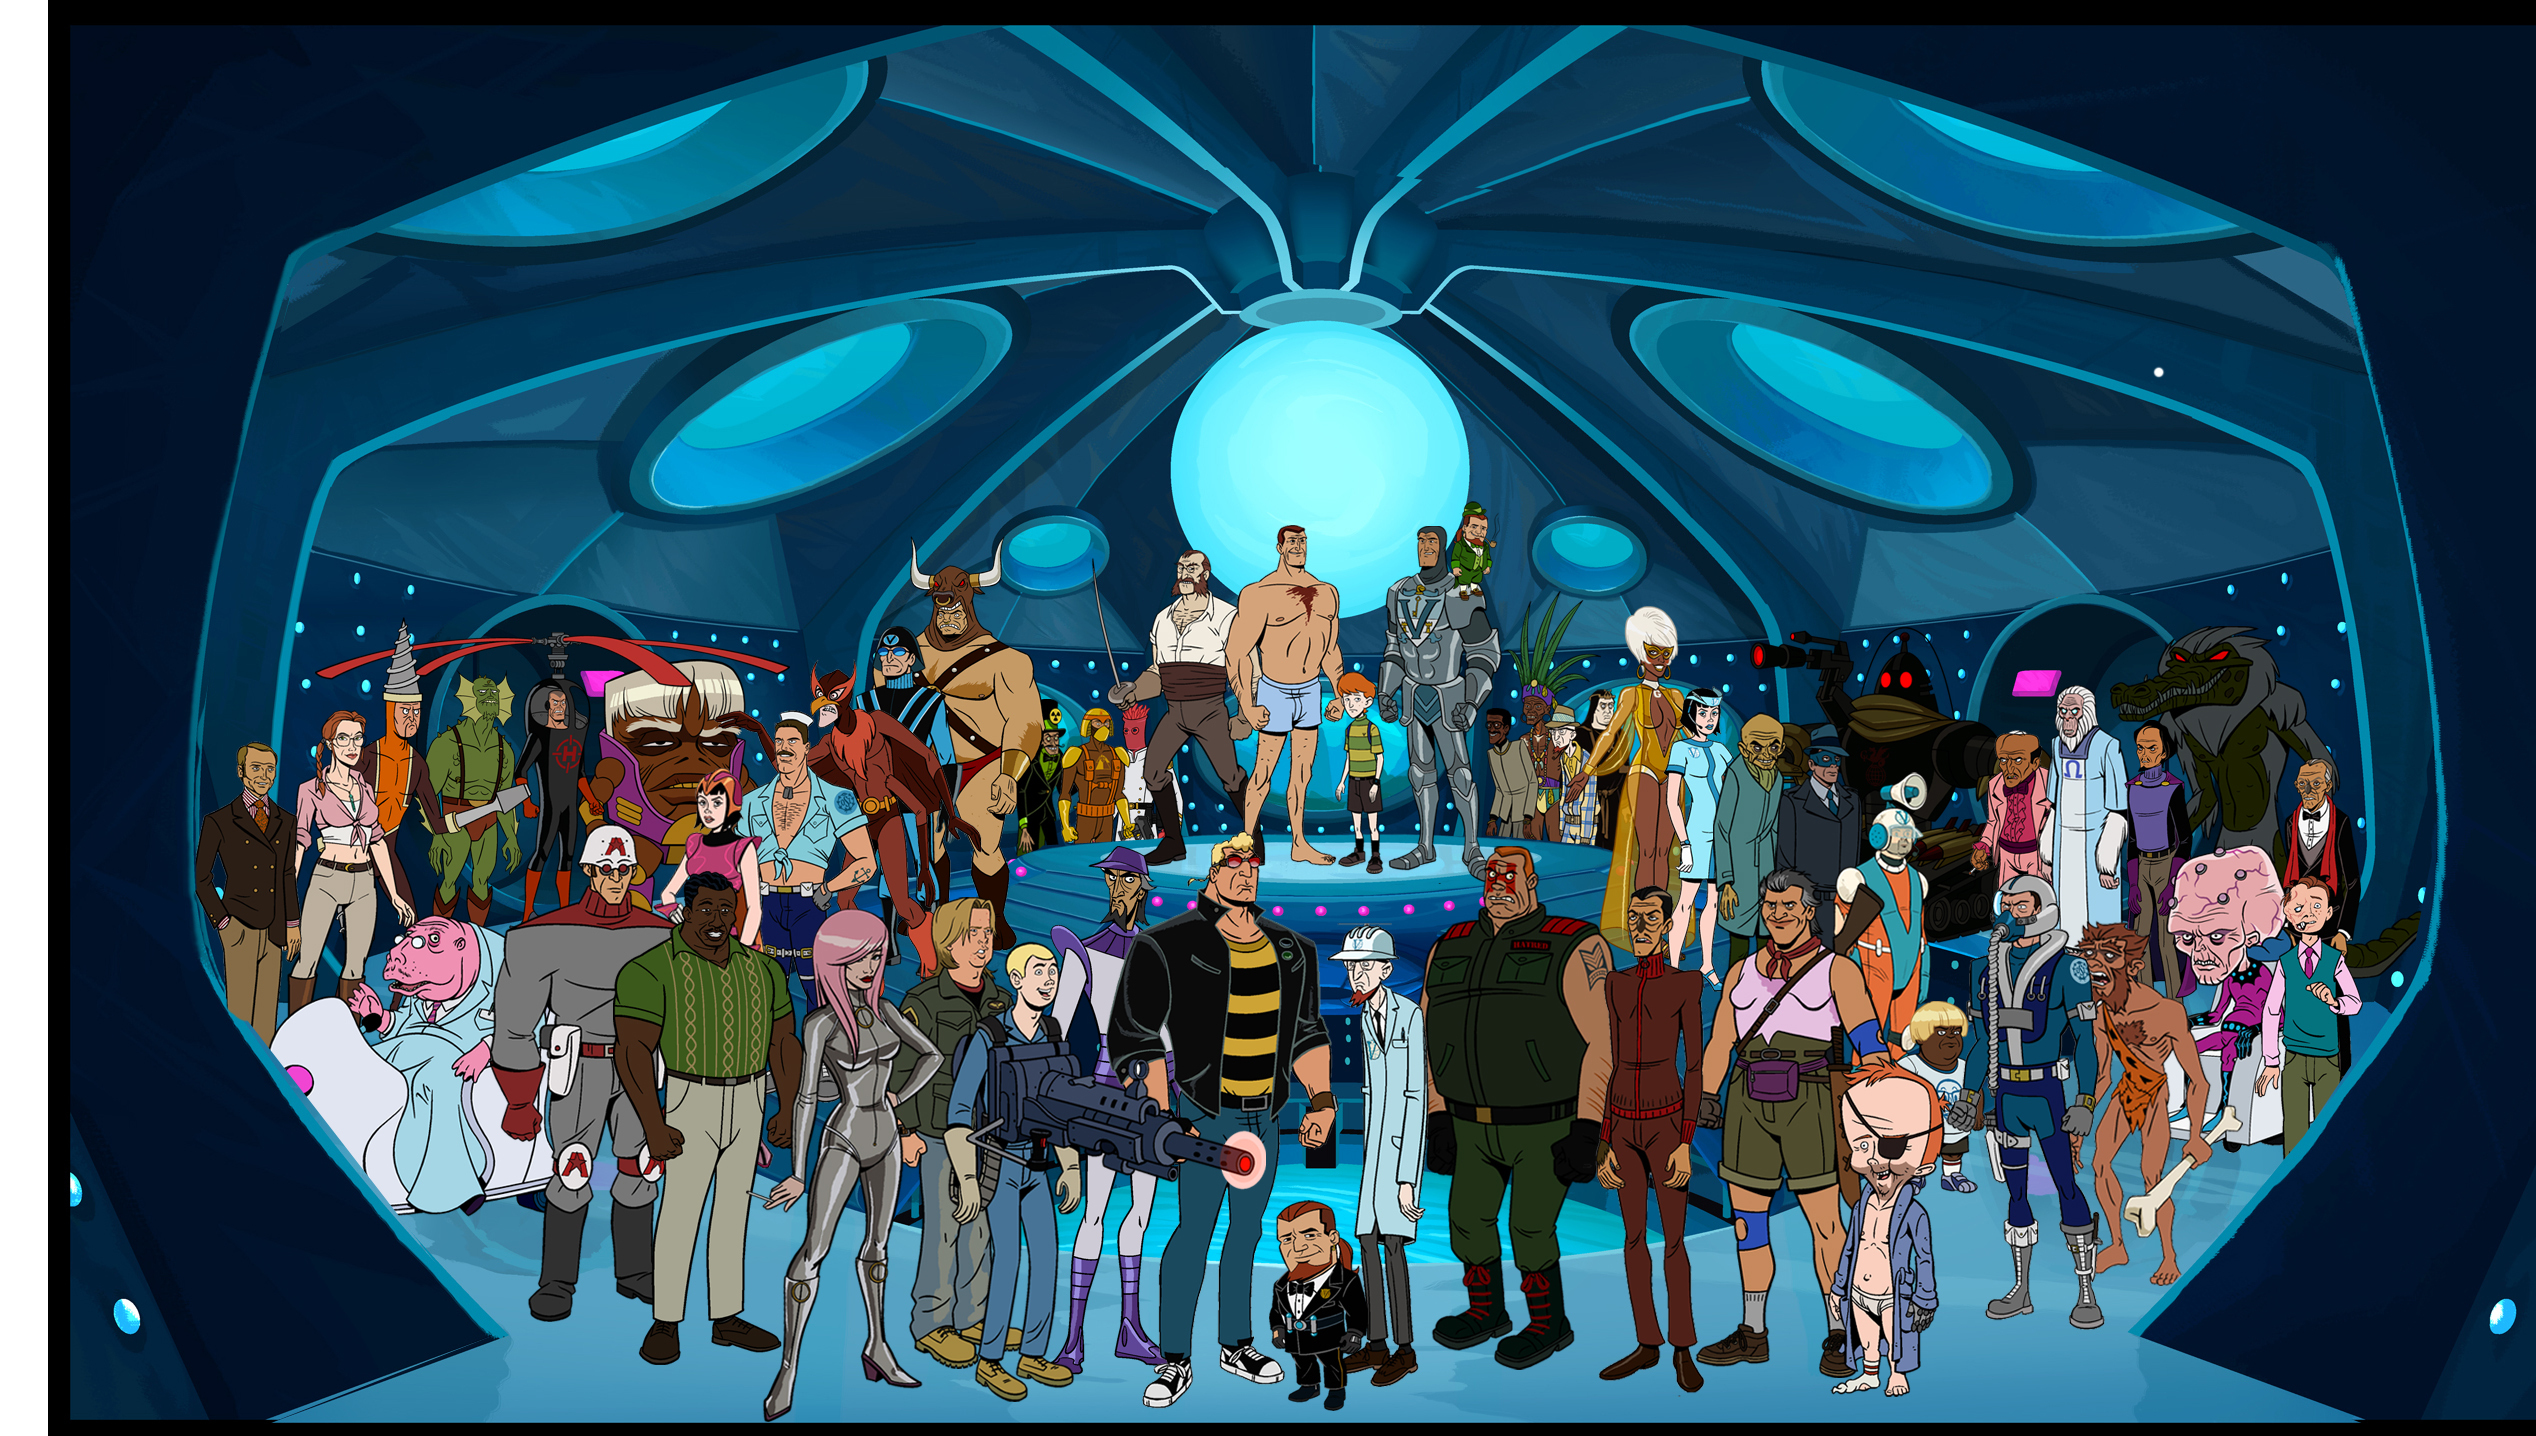 The Venture Bros Wallpapers and Background Images   stmednet 2536x1436